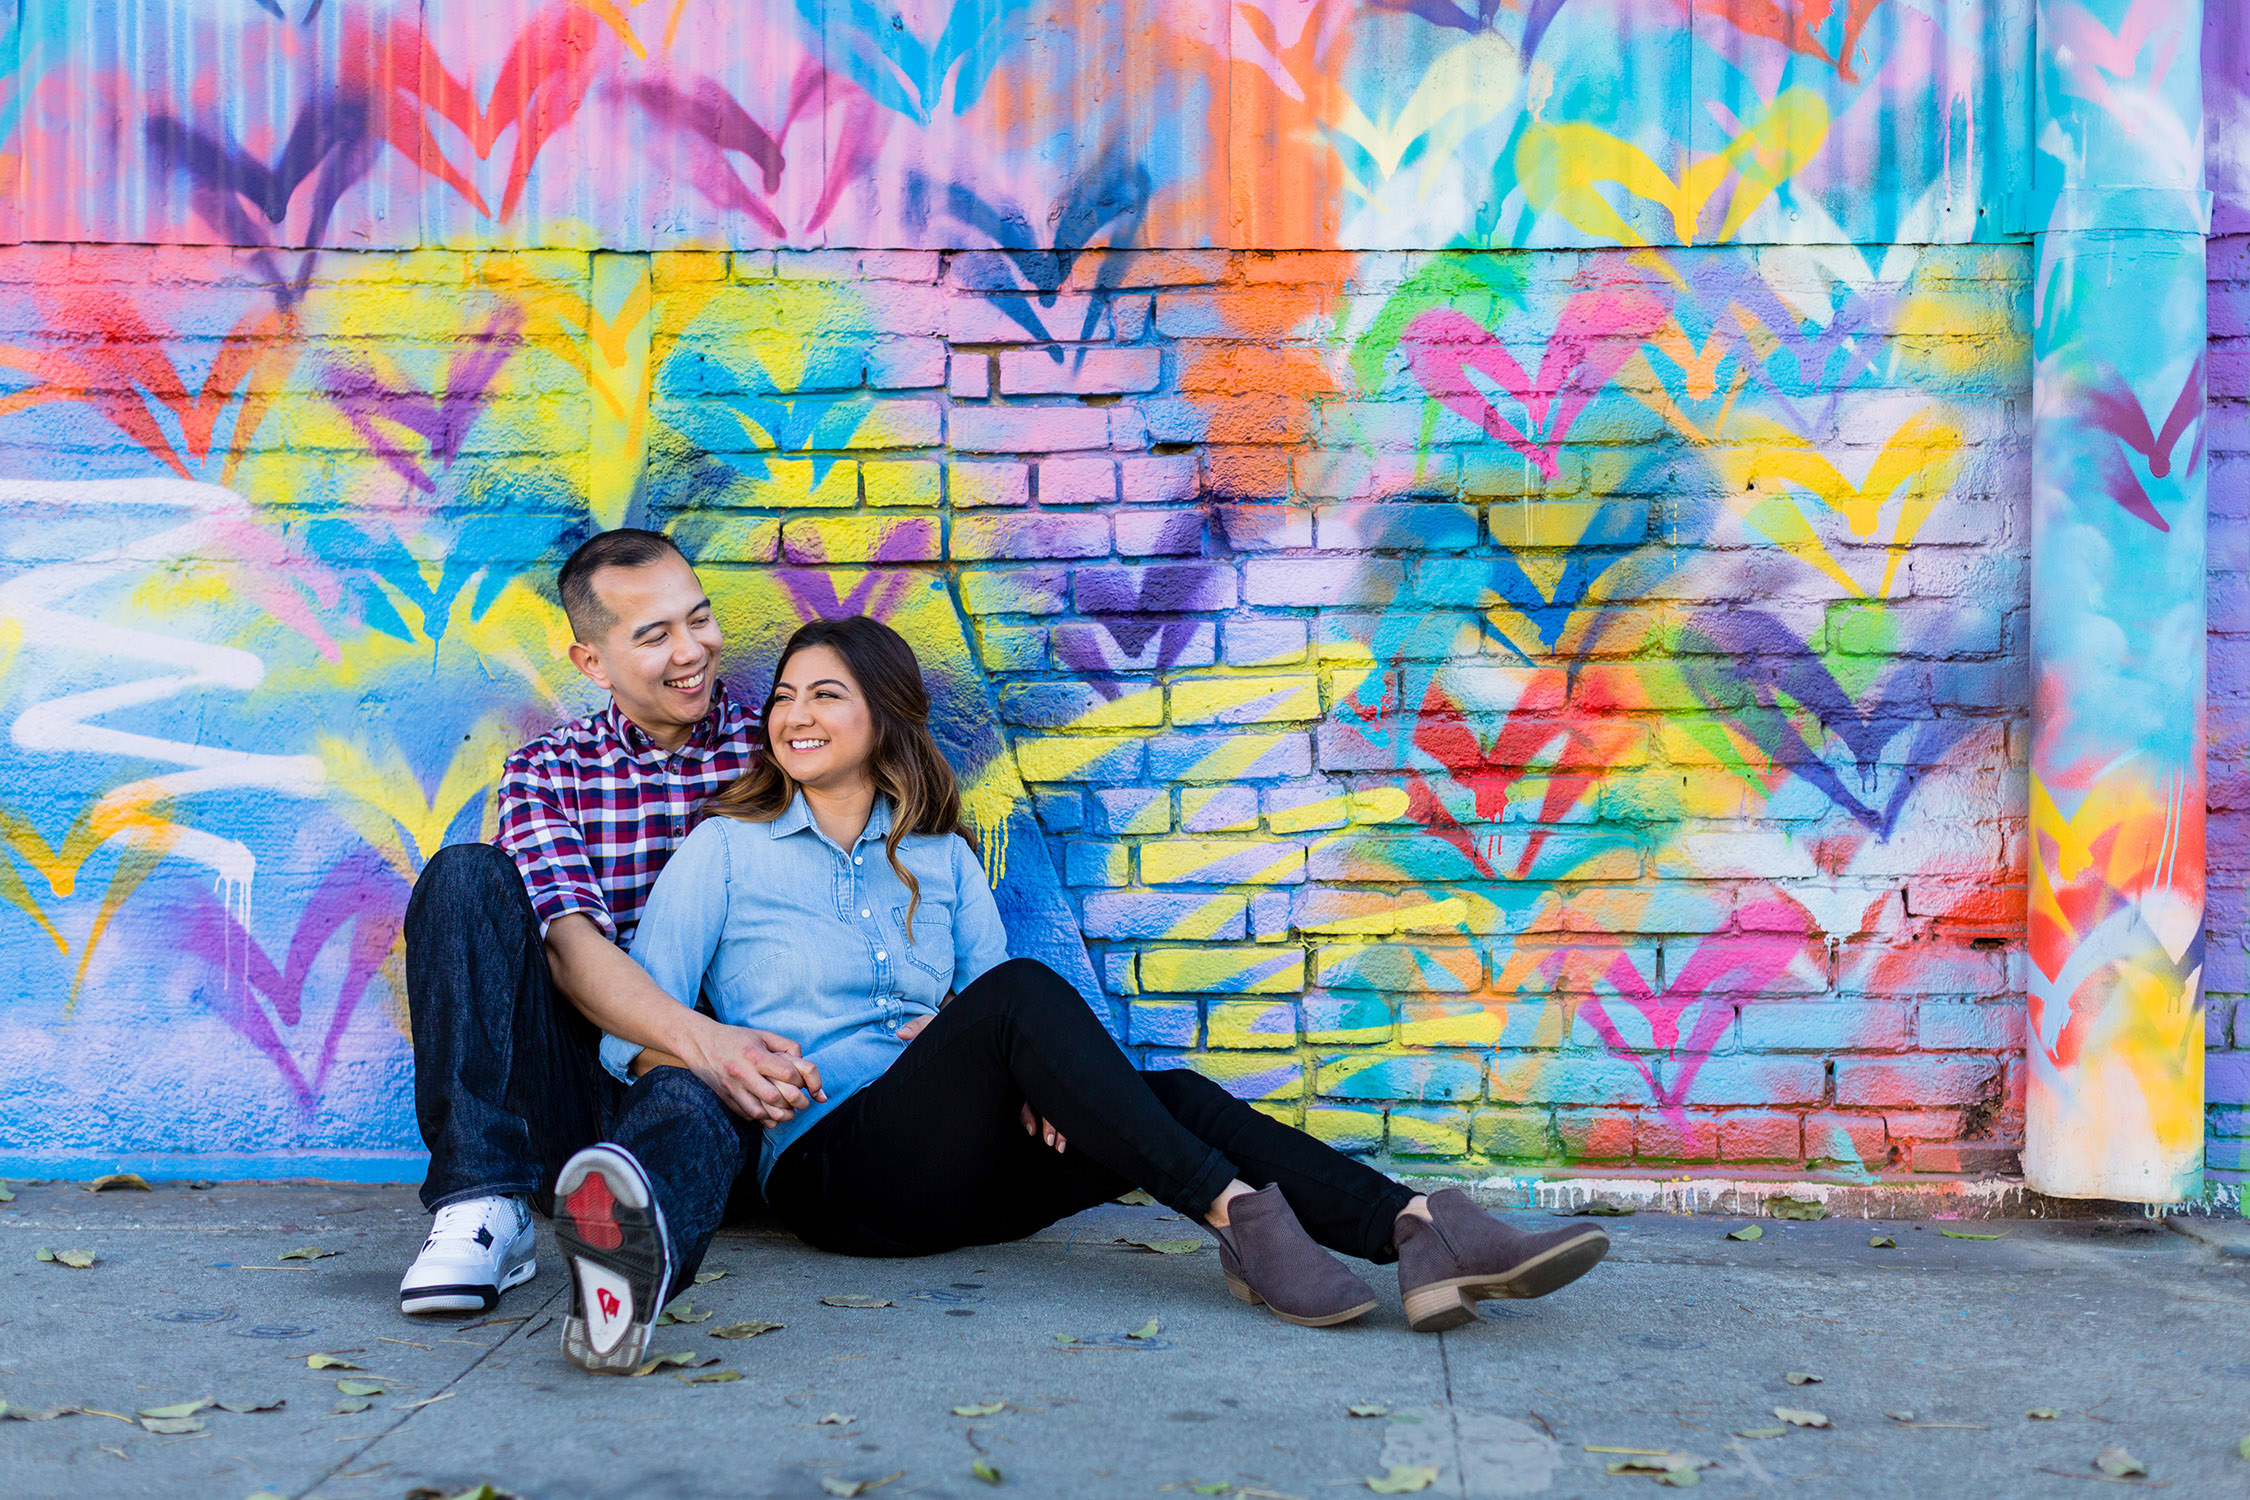 Engagement Session at Arts District Downtown Los Angeles, CA